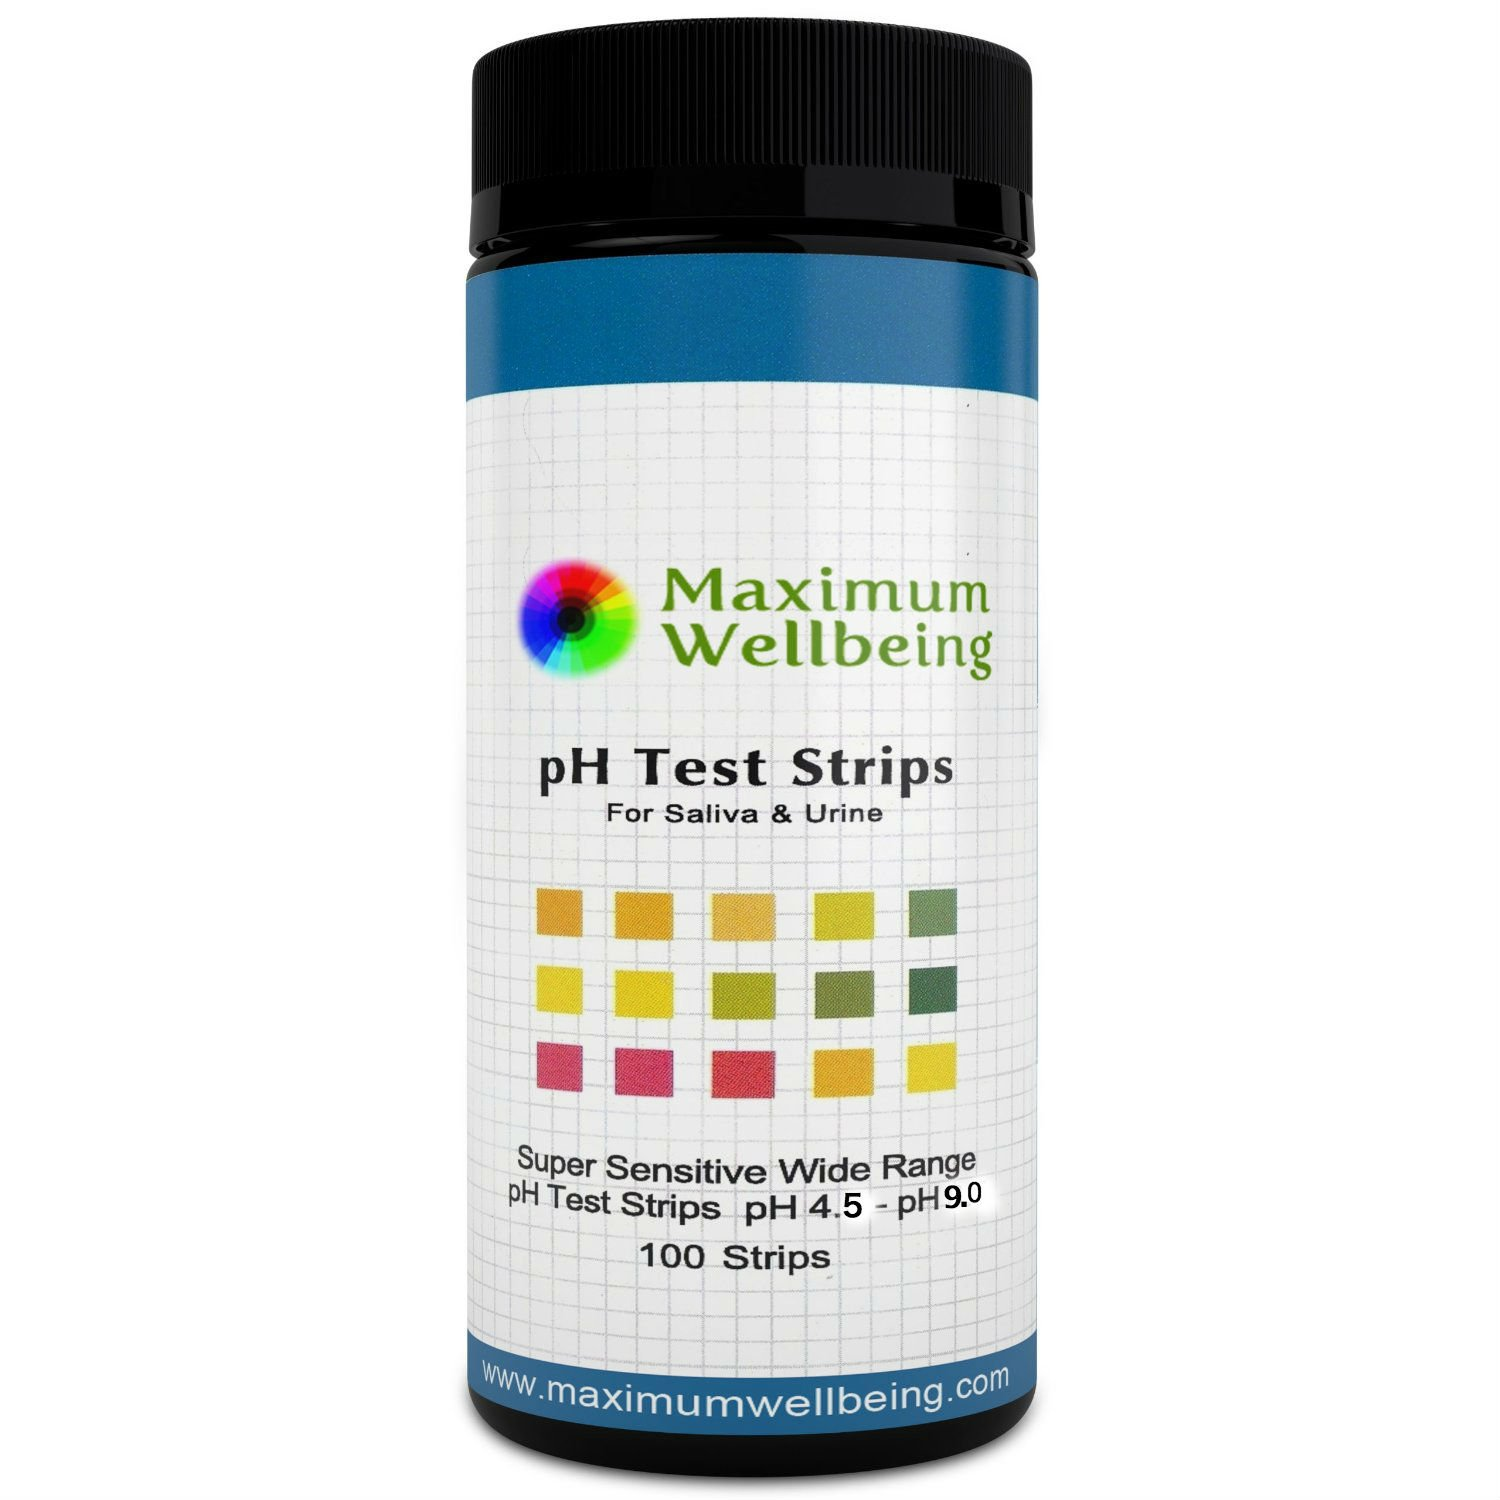 The Original Premium Quality Ph Test Strips for Urine and Saliva. A Fast, Accurate Way to Test Your Body Acid Alkaline Balance. More Accurate Than Litmus Paper or Ph Paper. by Maximum Wellbeing